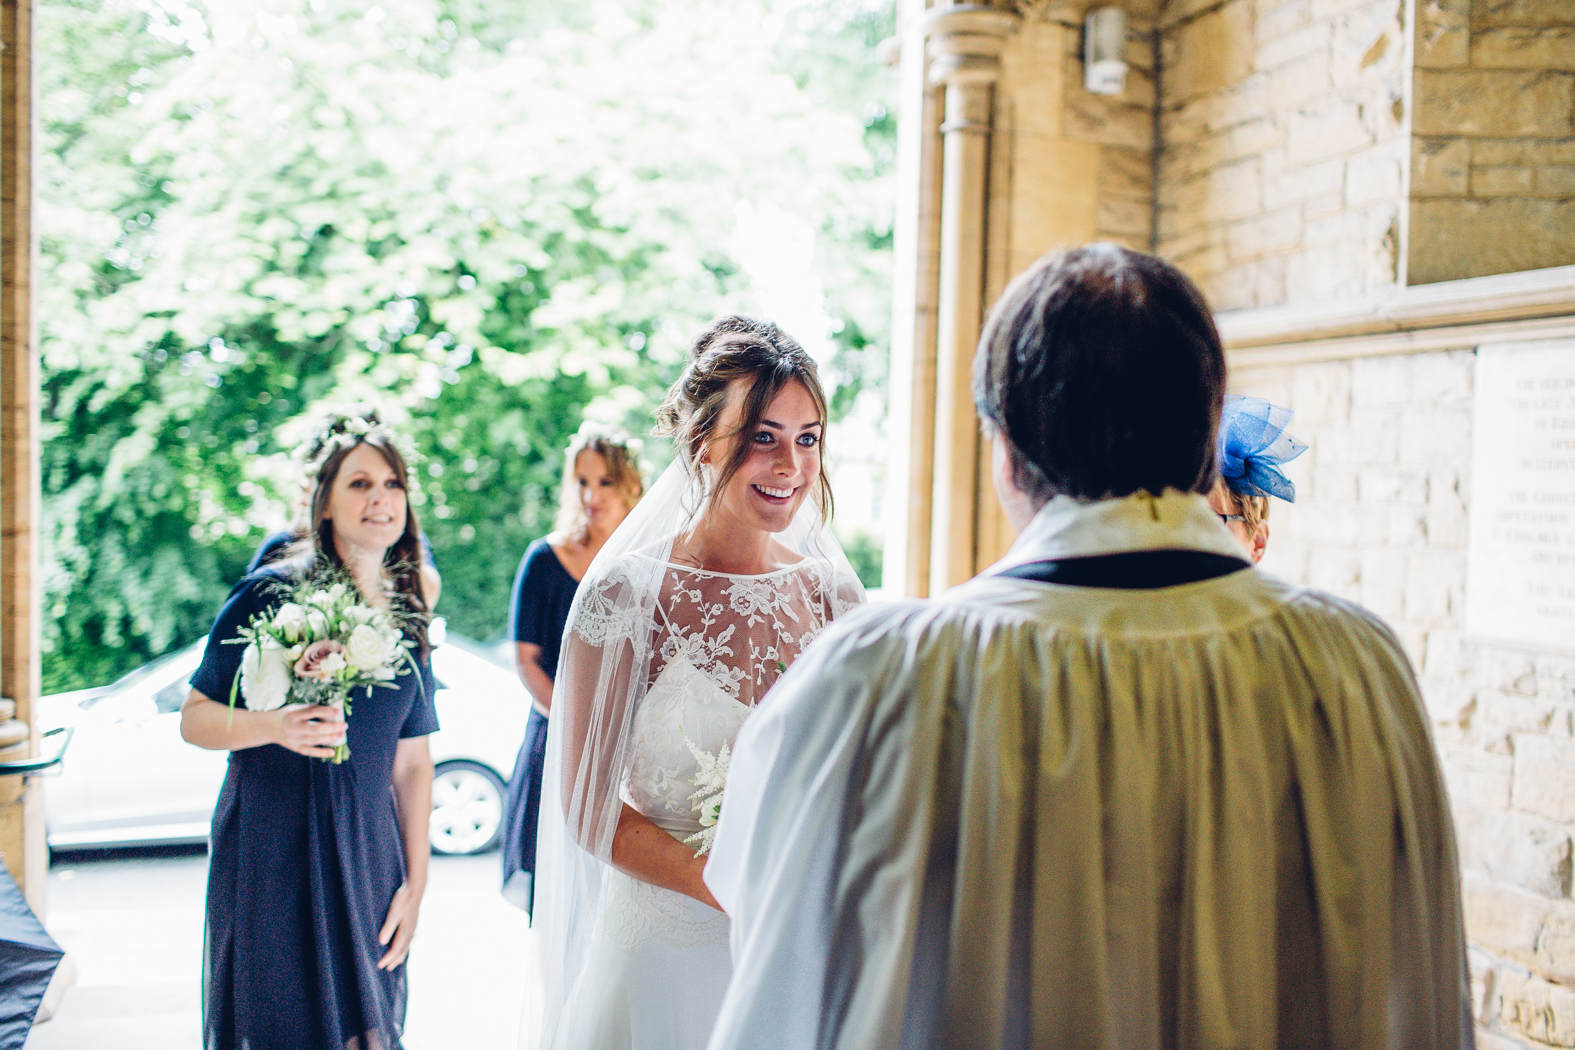 Halfpenny london wedding dress for an industrial wedding in sheffield halfpenny london wedding dress ombrellifo Images